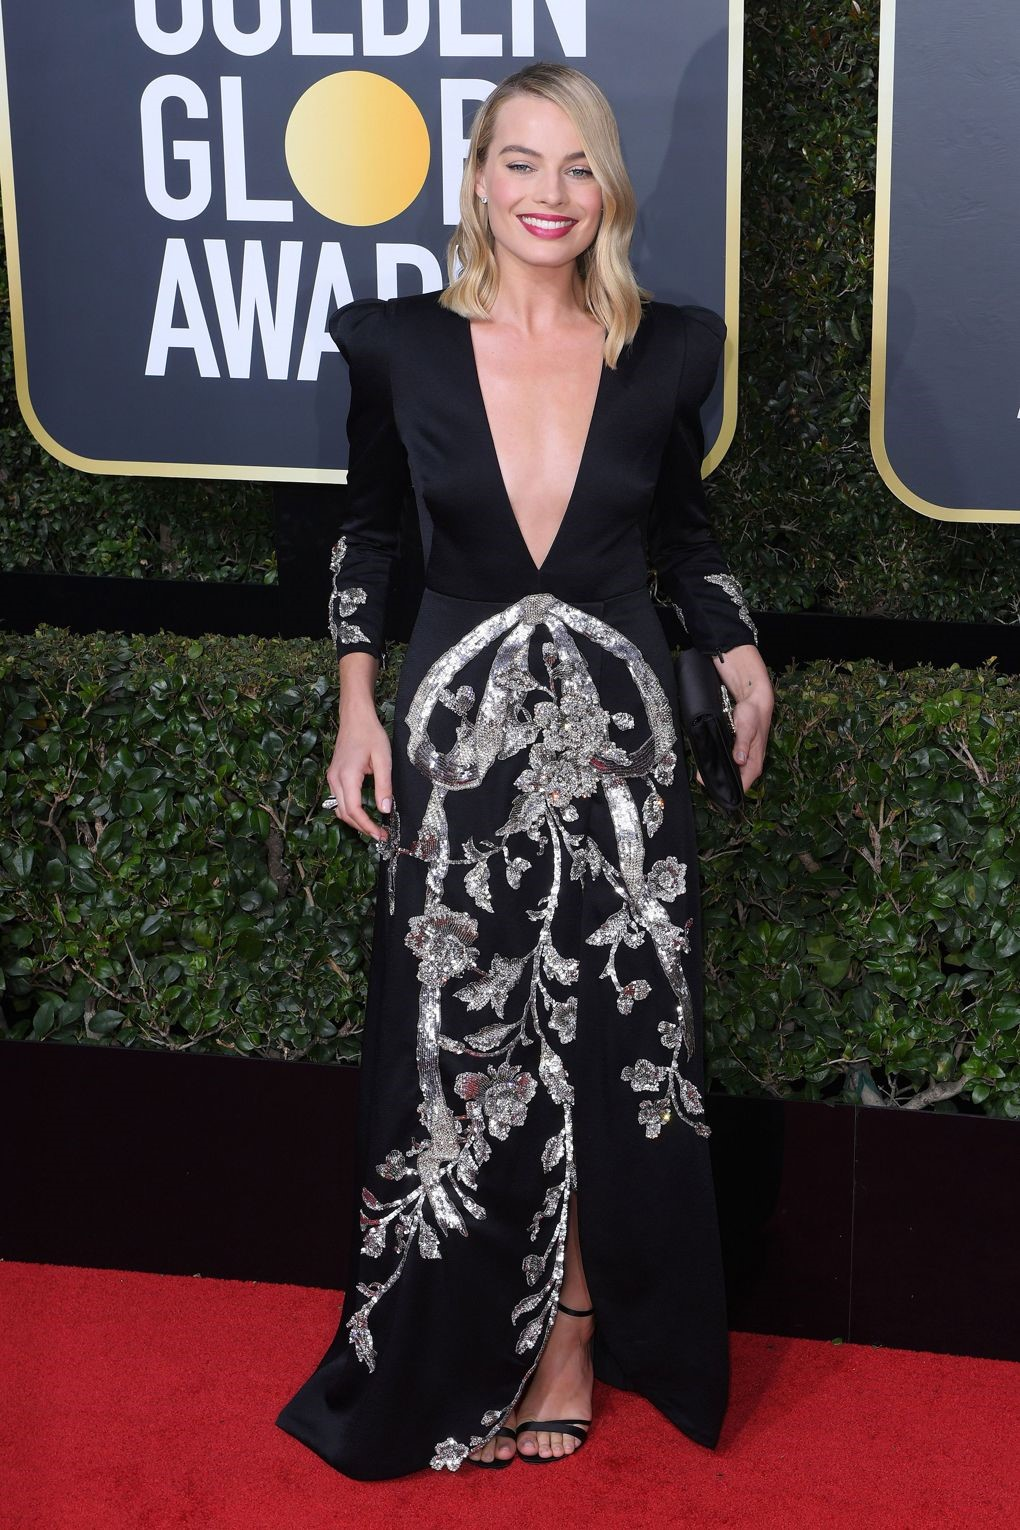 Maggie Robot in Vintage inspired Gucci with the right amount of sparkle, she completed her look with a Roger Viver Sandals making it a complete look. golden globes 2018 JD's top 13 red carpet looks of Golden Globes 2018 6